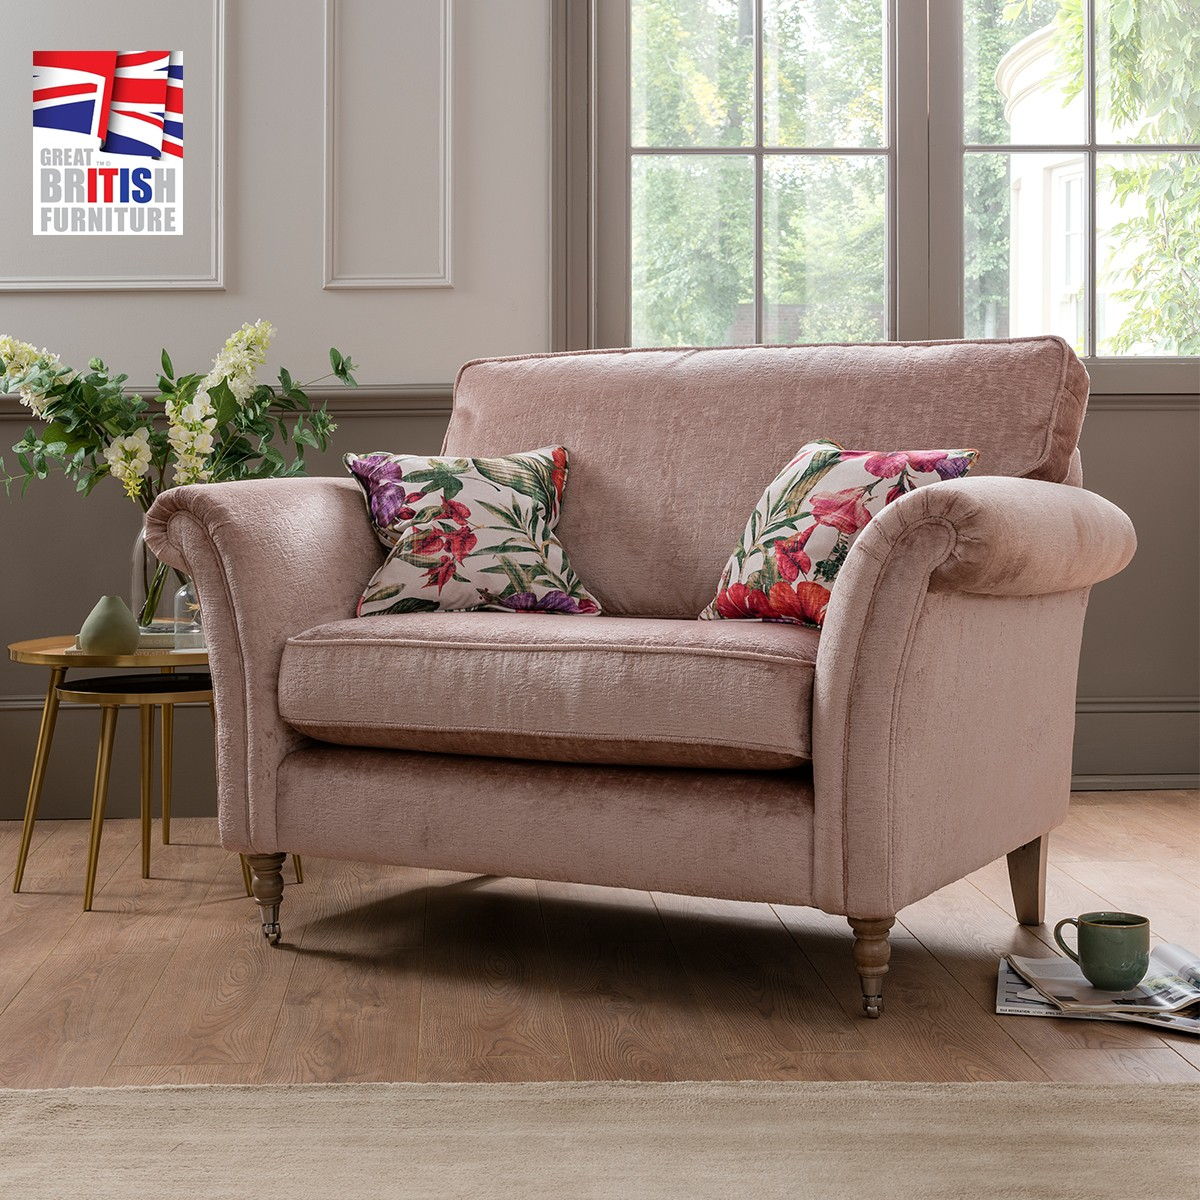 Best Quality Sofa Manufacturers: Five Reasons Why Made In Britain Means Quality